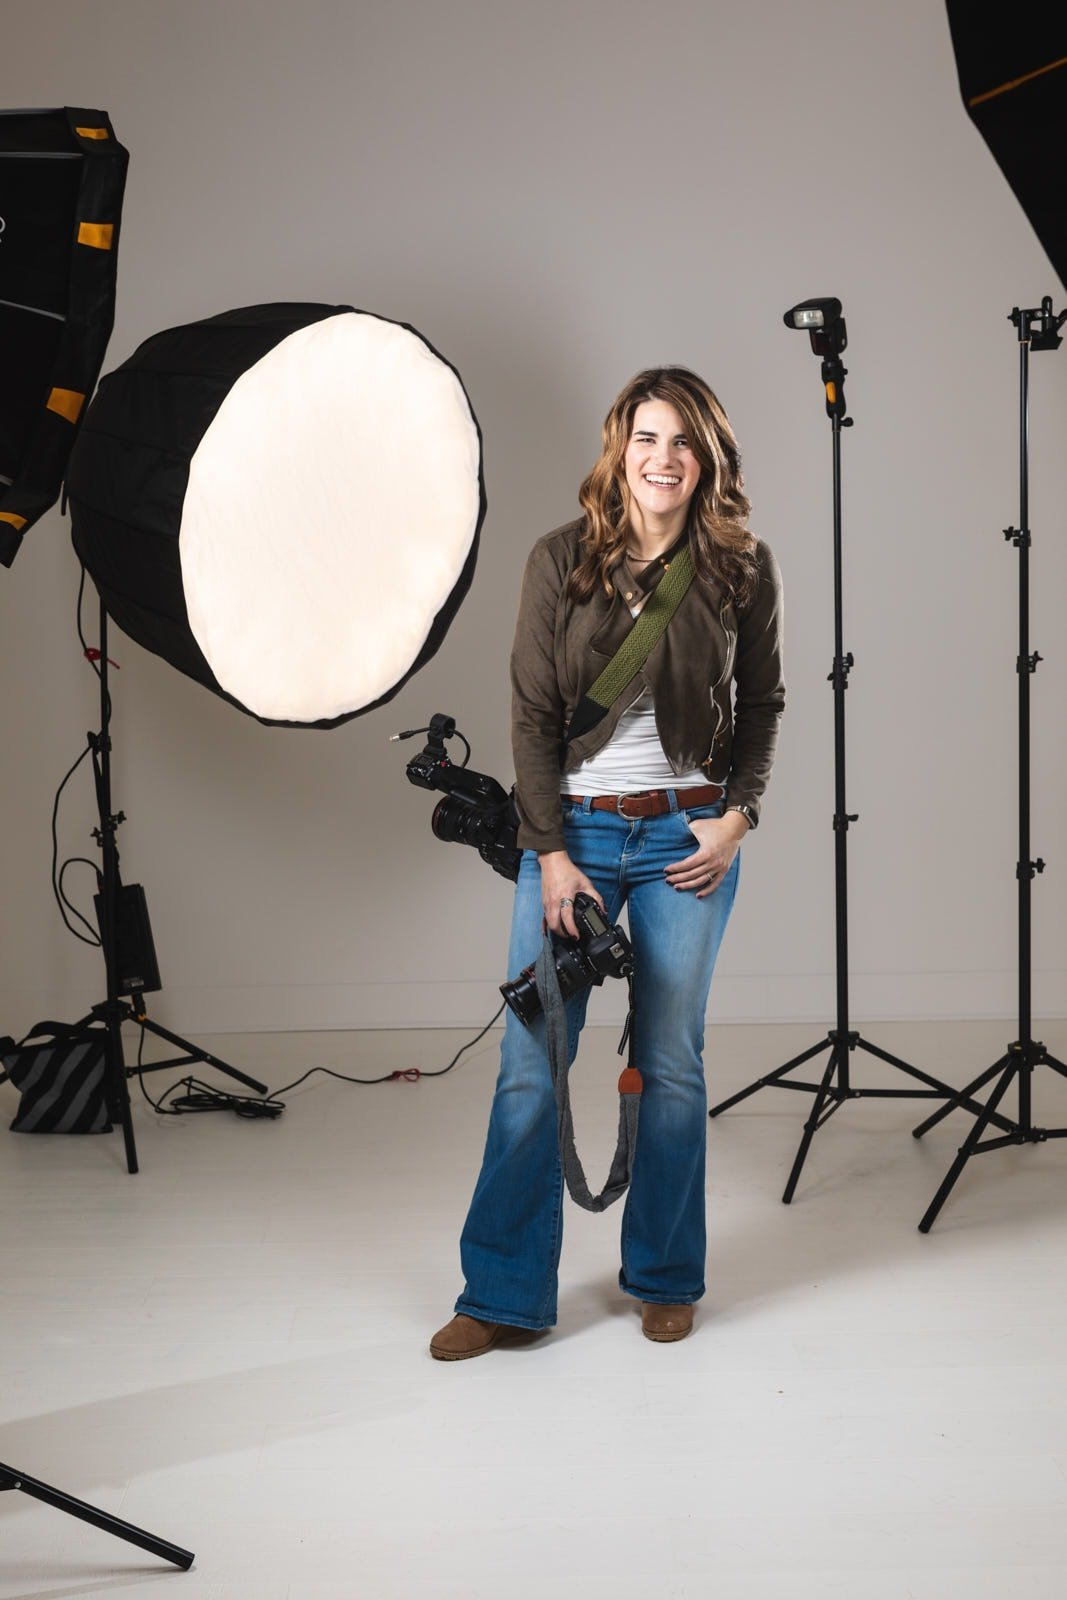 photographer laughing with studio flash equipment in White Wall Studio Woodstock